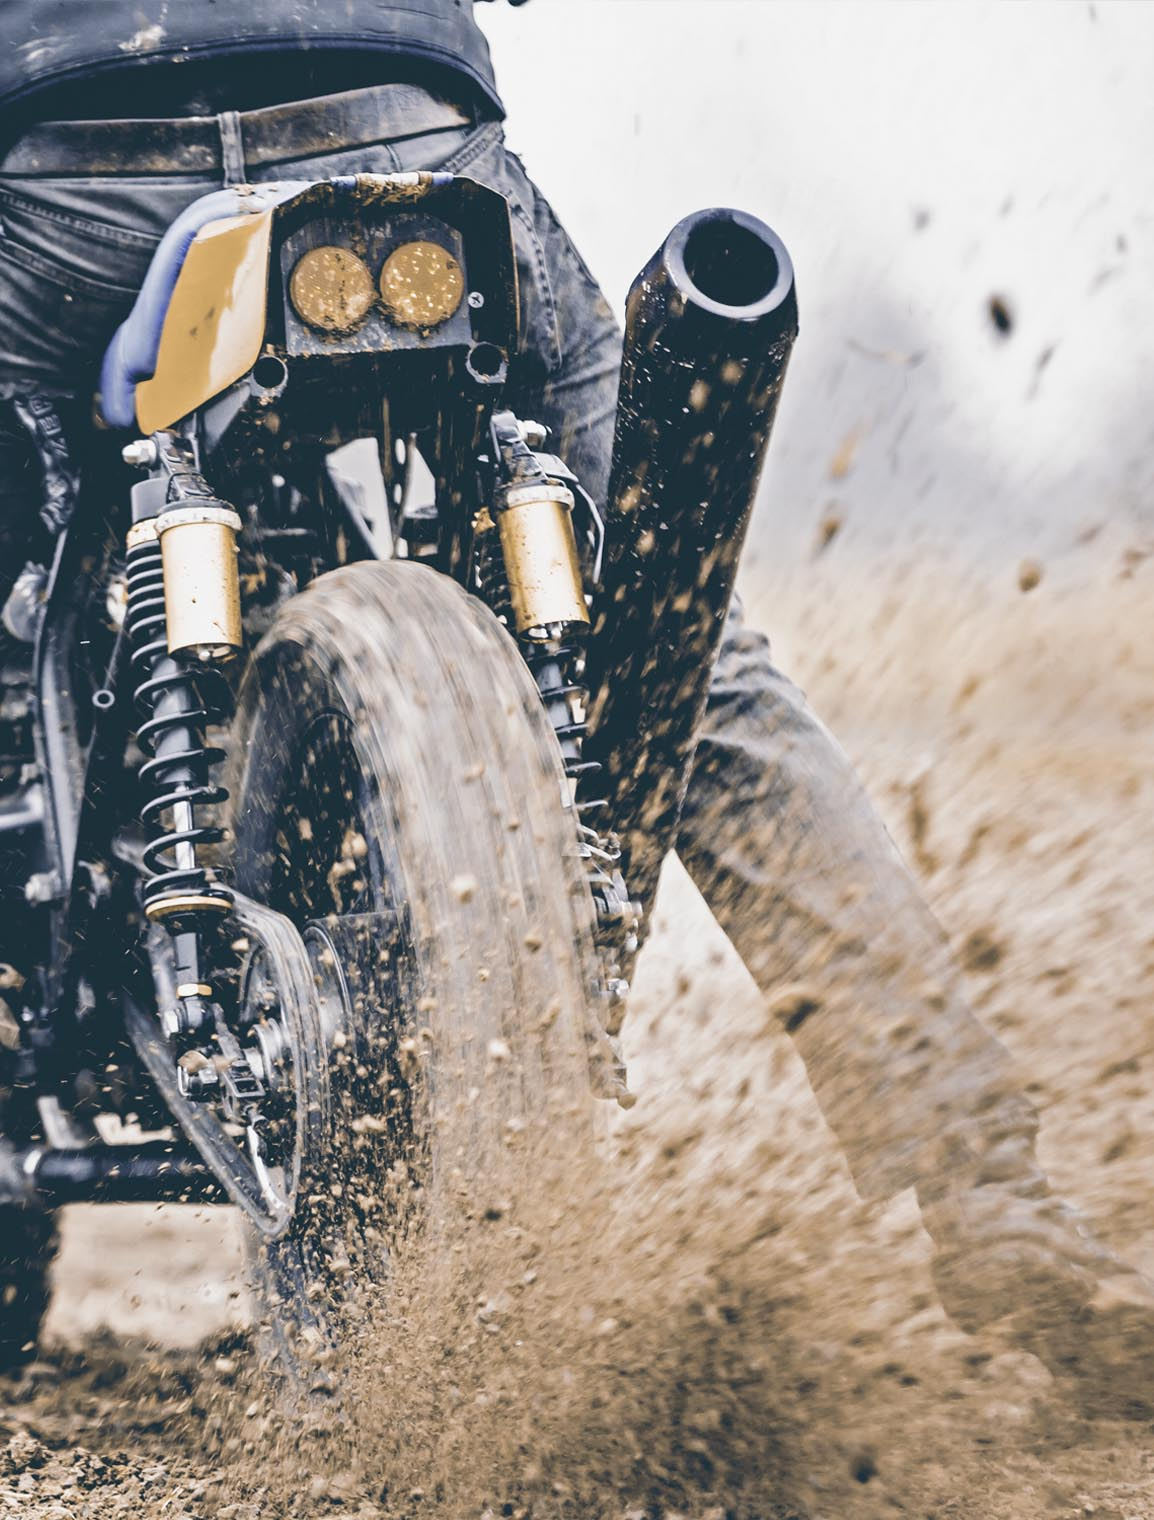 titan_roadtrip_motorcycles_offroad_kawa_dirt_spray